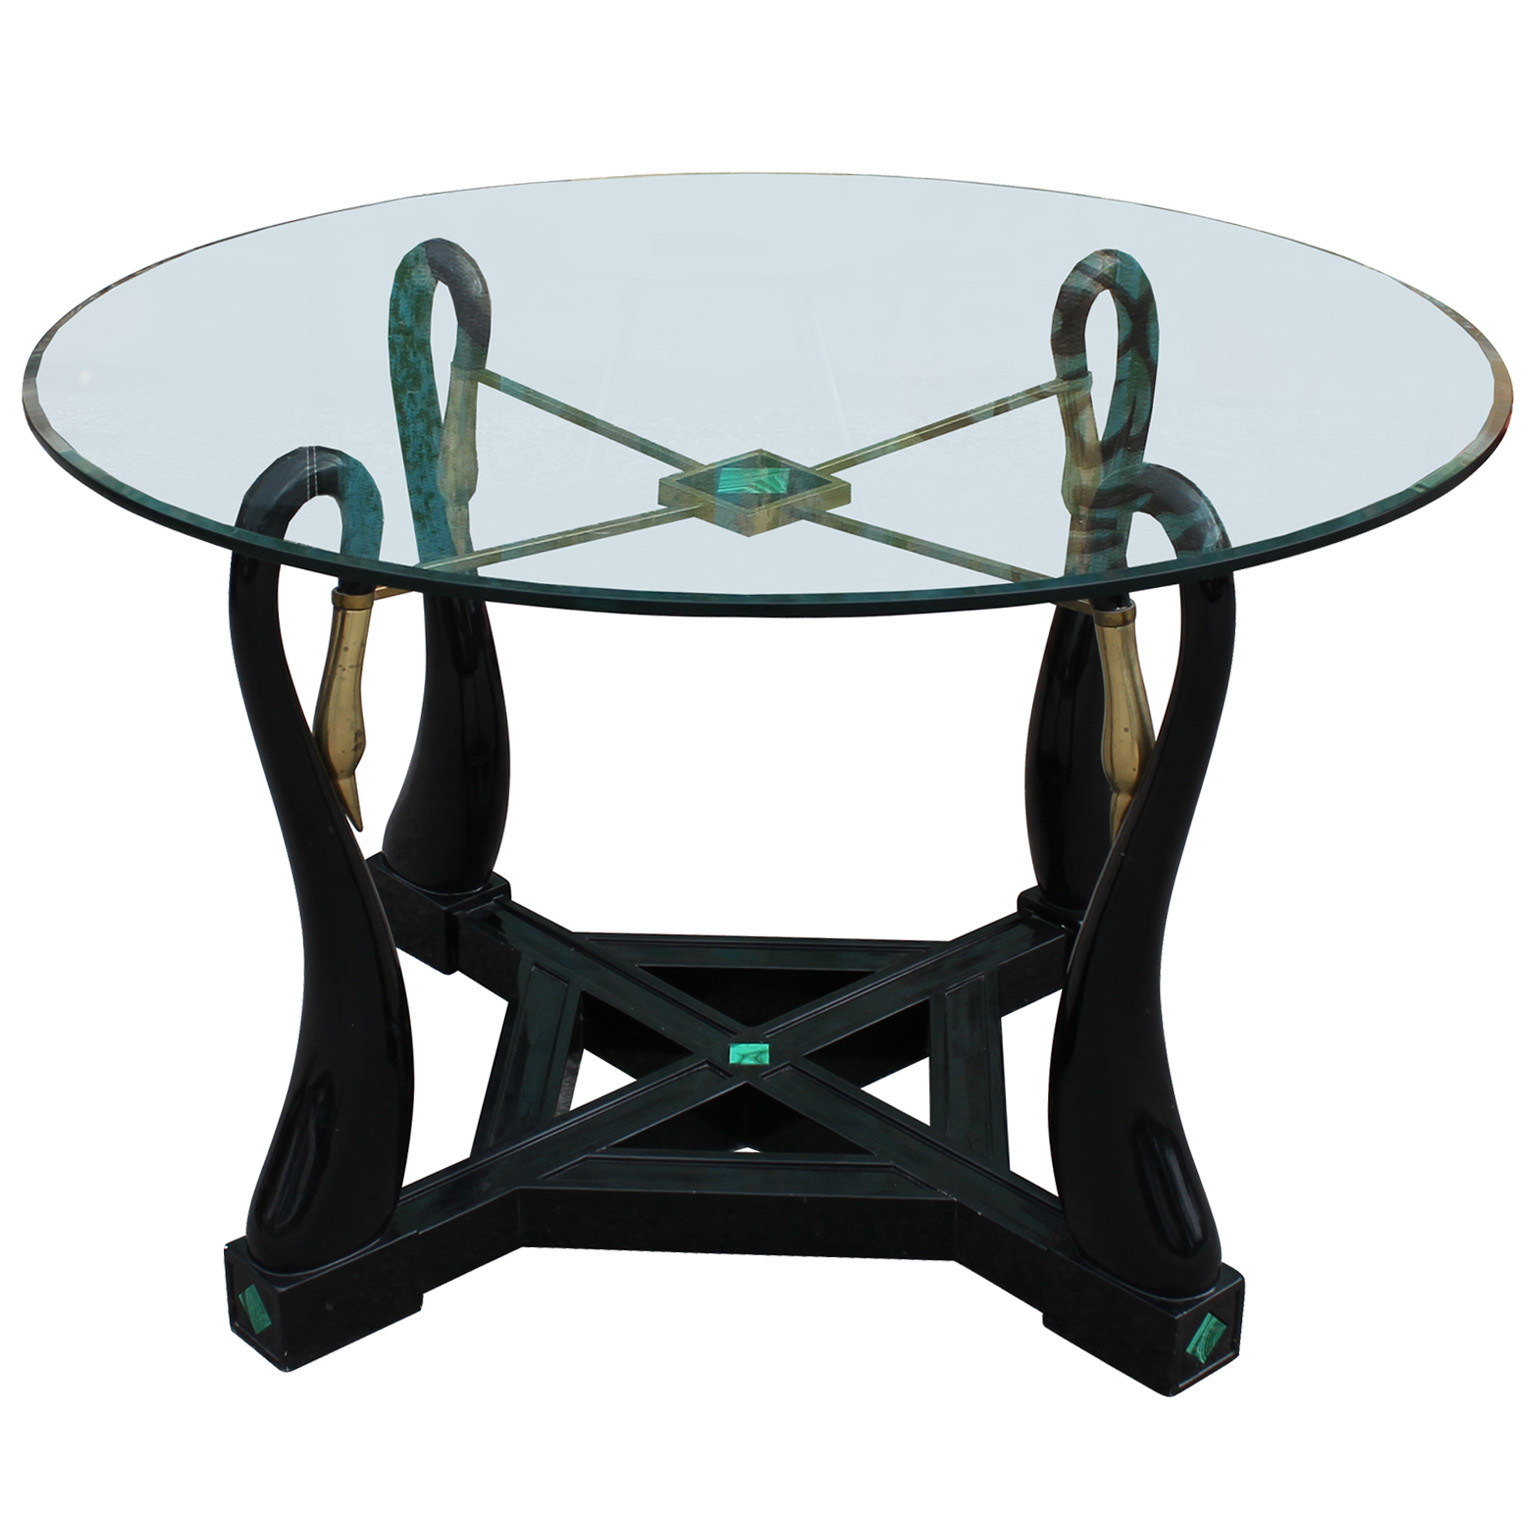 Kittinger Coffee Table Images Kittinger Dining Table  : swan table7 from www.favefaves.com size 1536 x 1536 jpeg 242kB